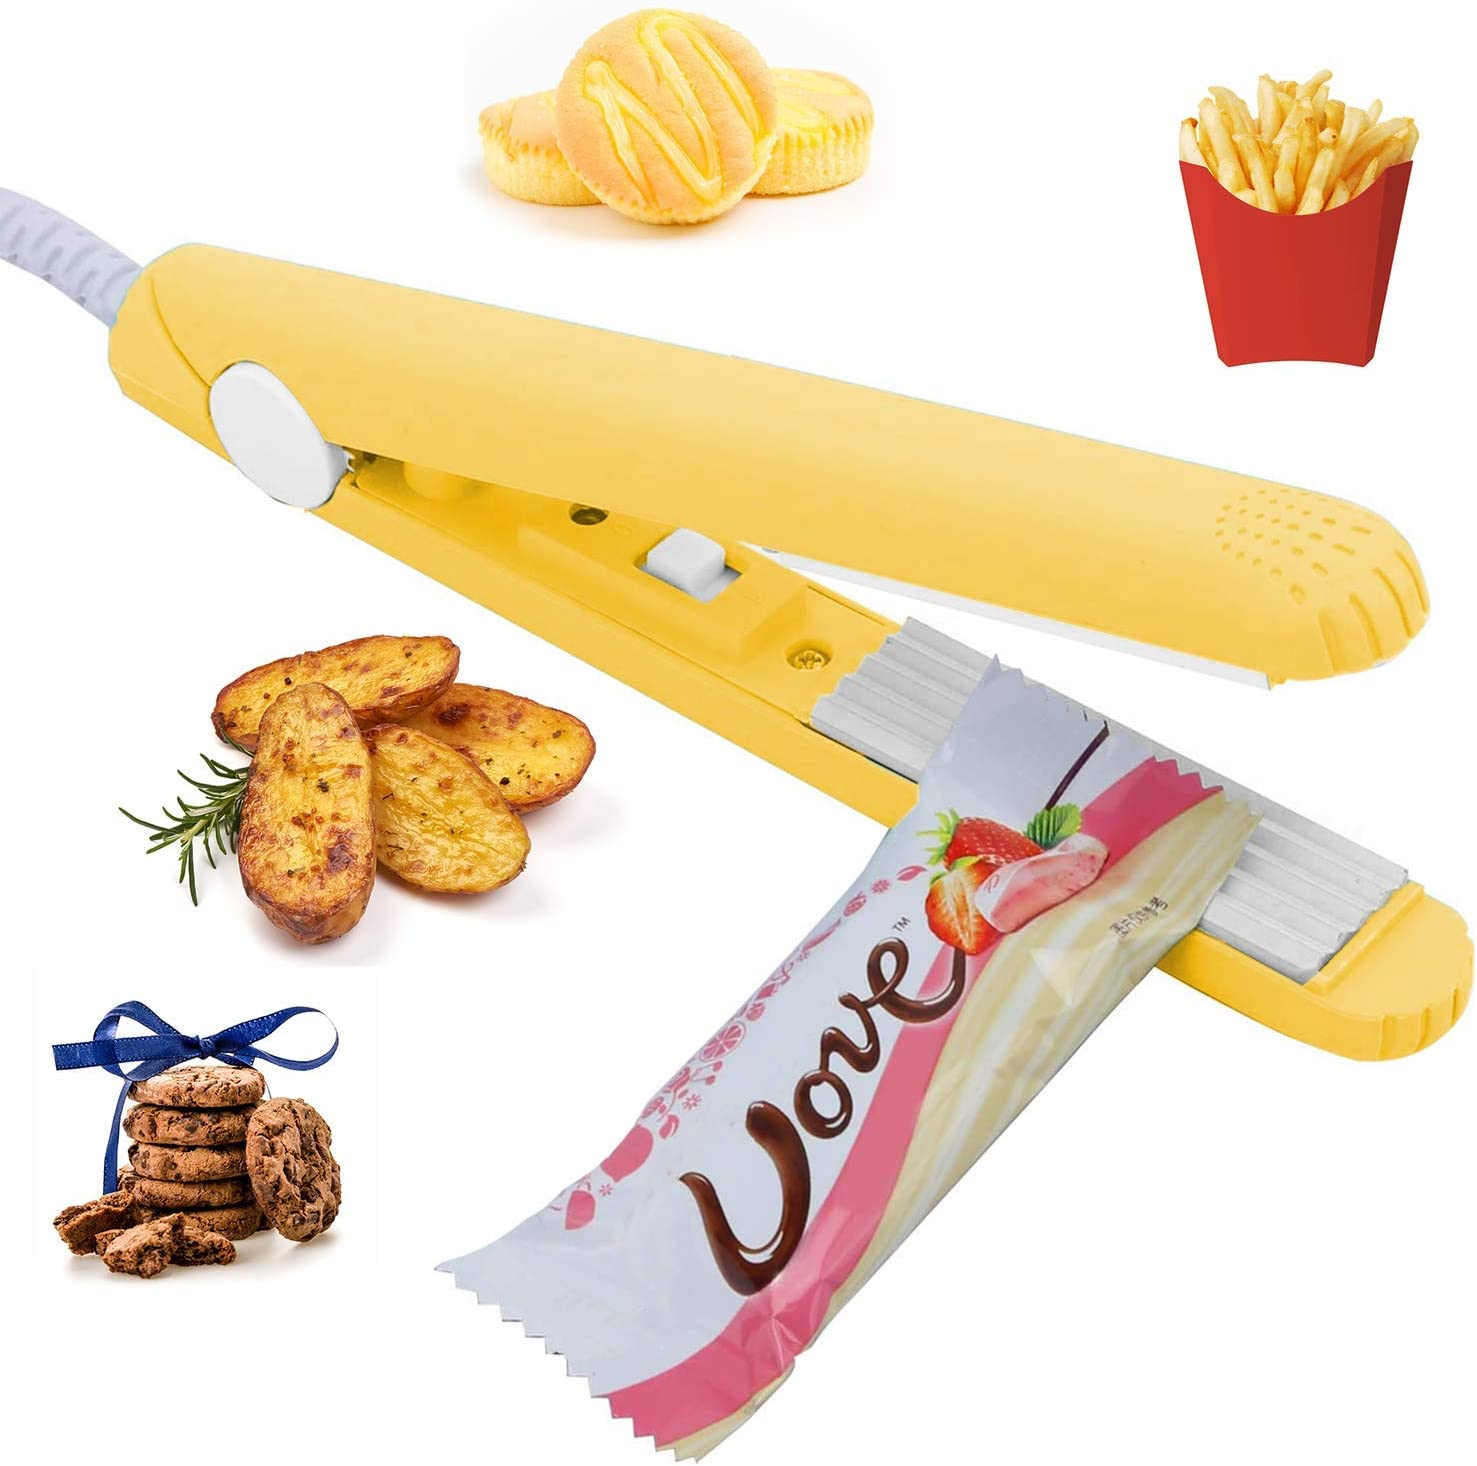 "Smart Bag Sealer Heat Seal Handheld for Food Storage, Portable Food Sealer Heat Sealing Machine with 45"" Power Cable for Small Plastic Bags, Vacuum Sealer Bags, Chip Bags, Snack Bags -Yellow"